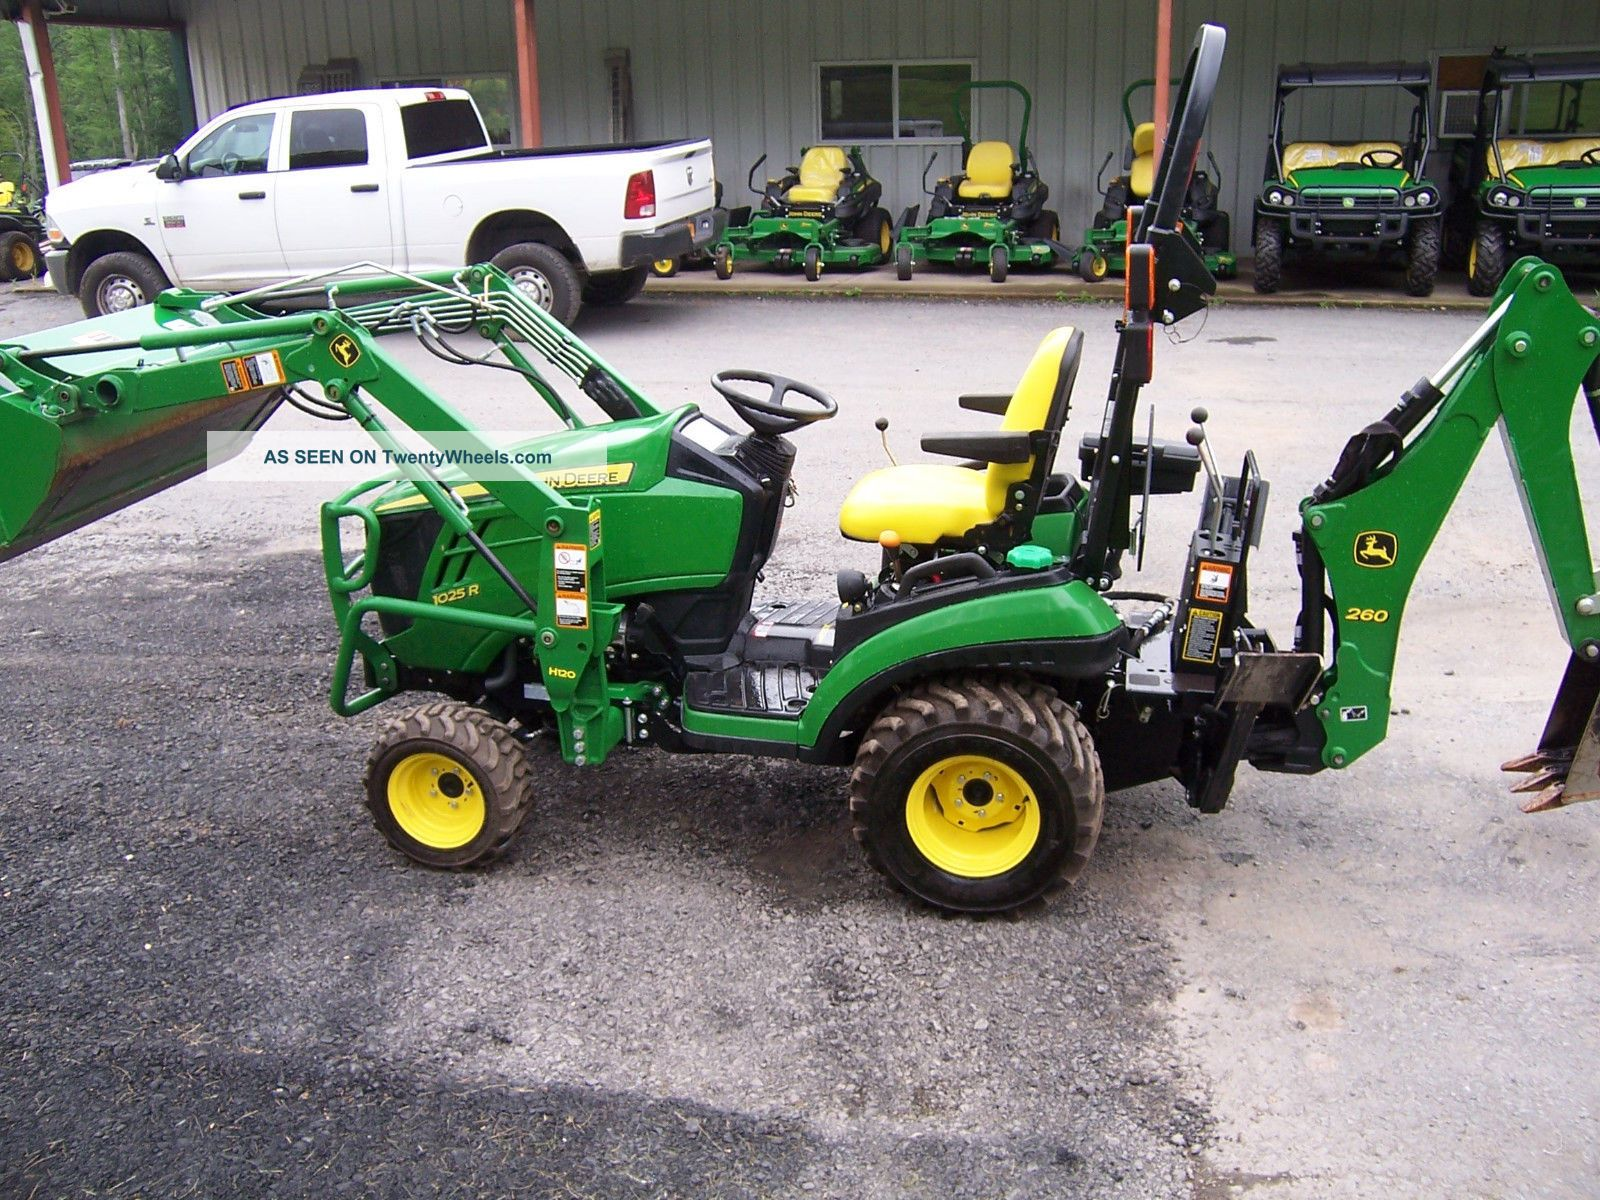 John Deere 1025R Attachments Bing images